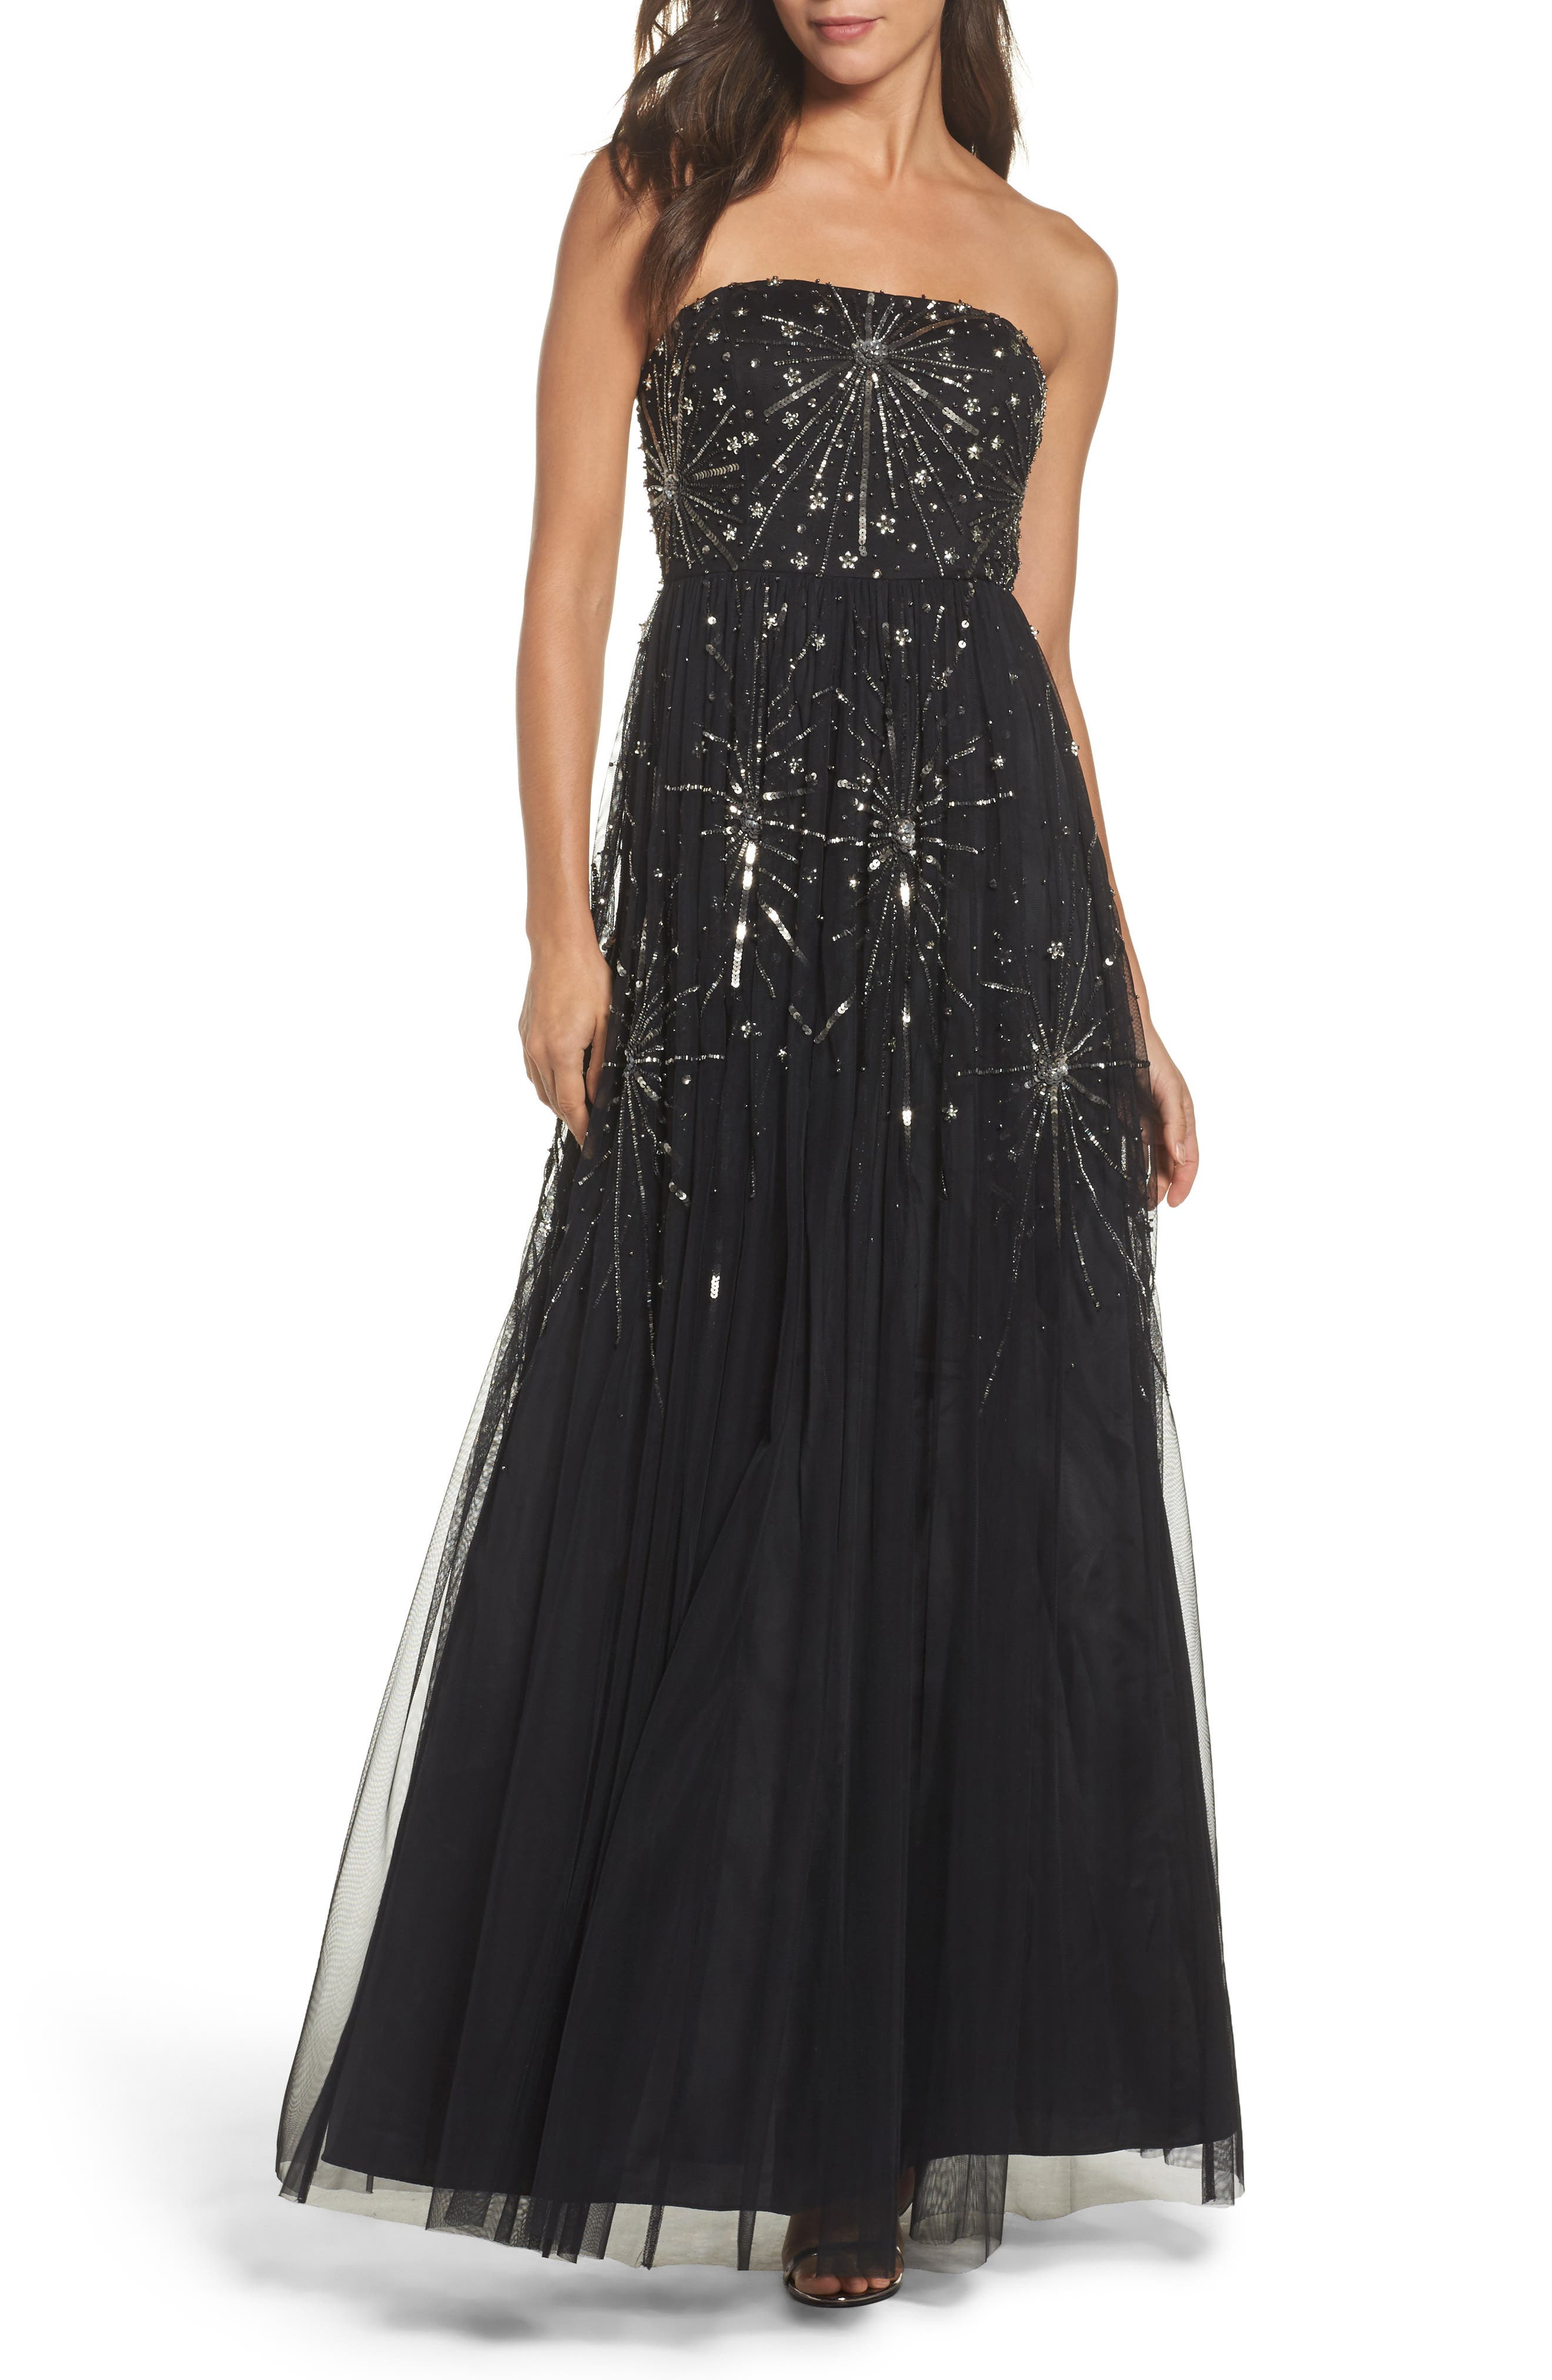 Main Image - Adrianna Papell Embellished Strapless Mesh Gown